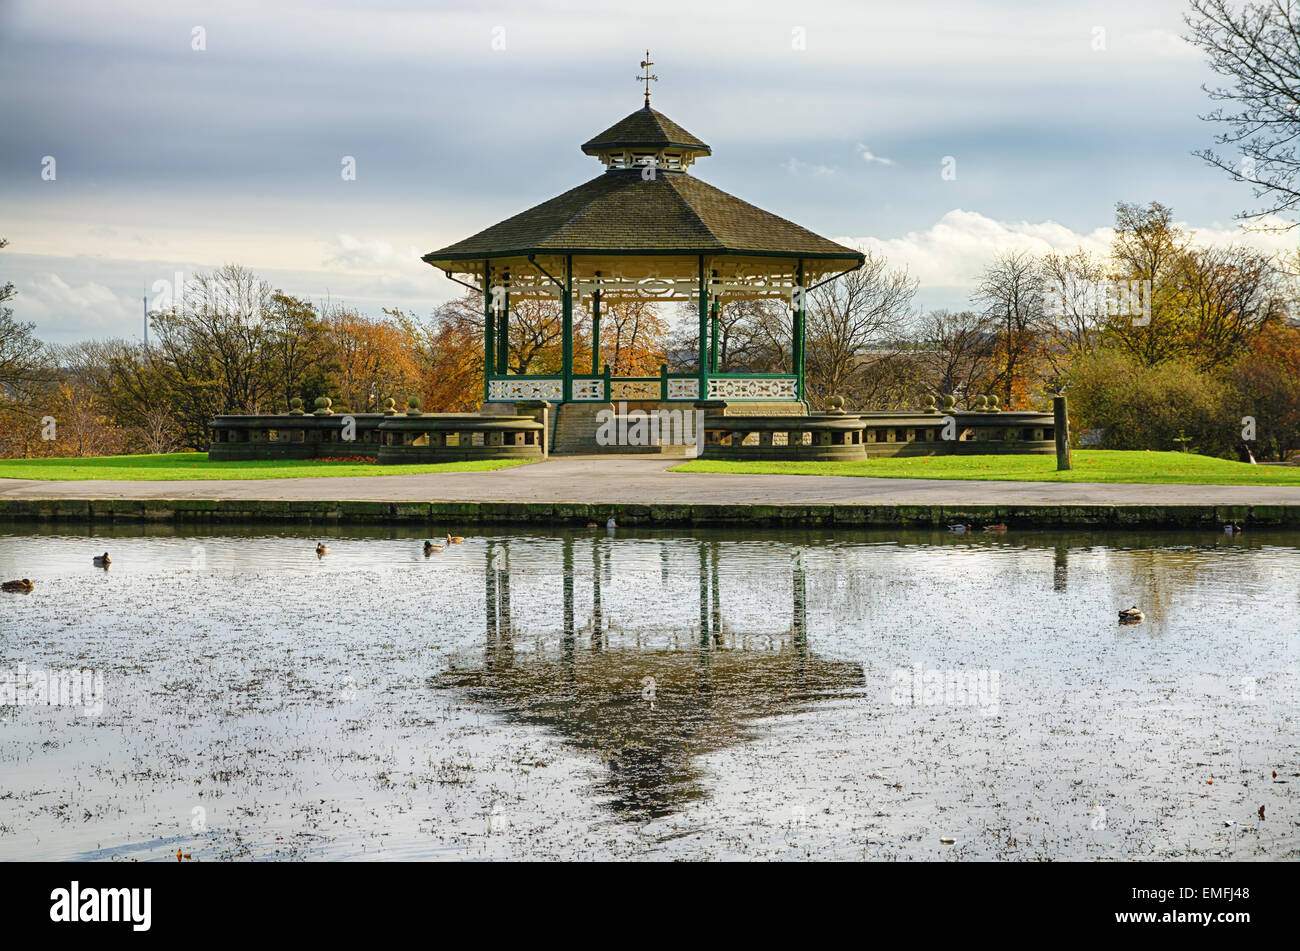 Bandstand and pond in Huddersfield, England. - Stock Image